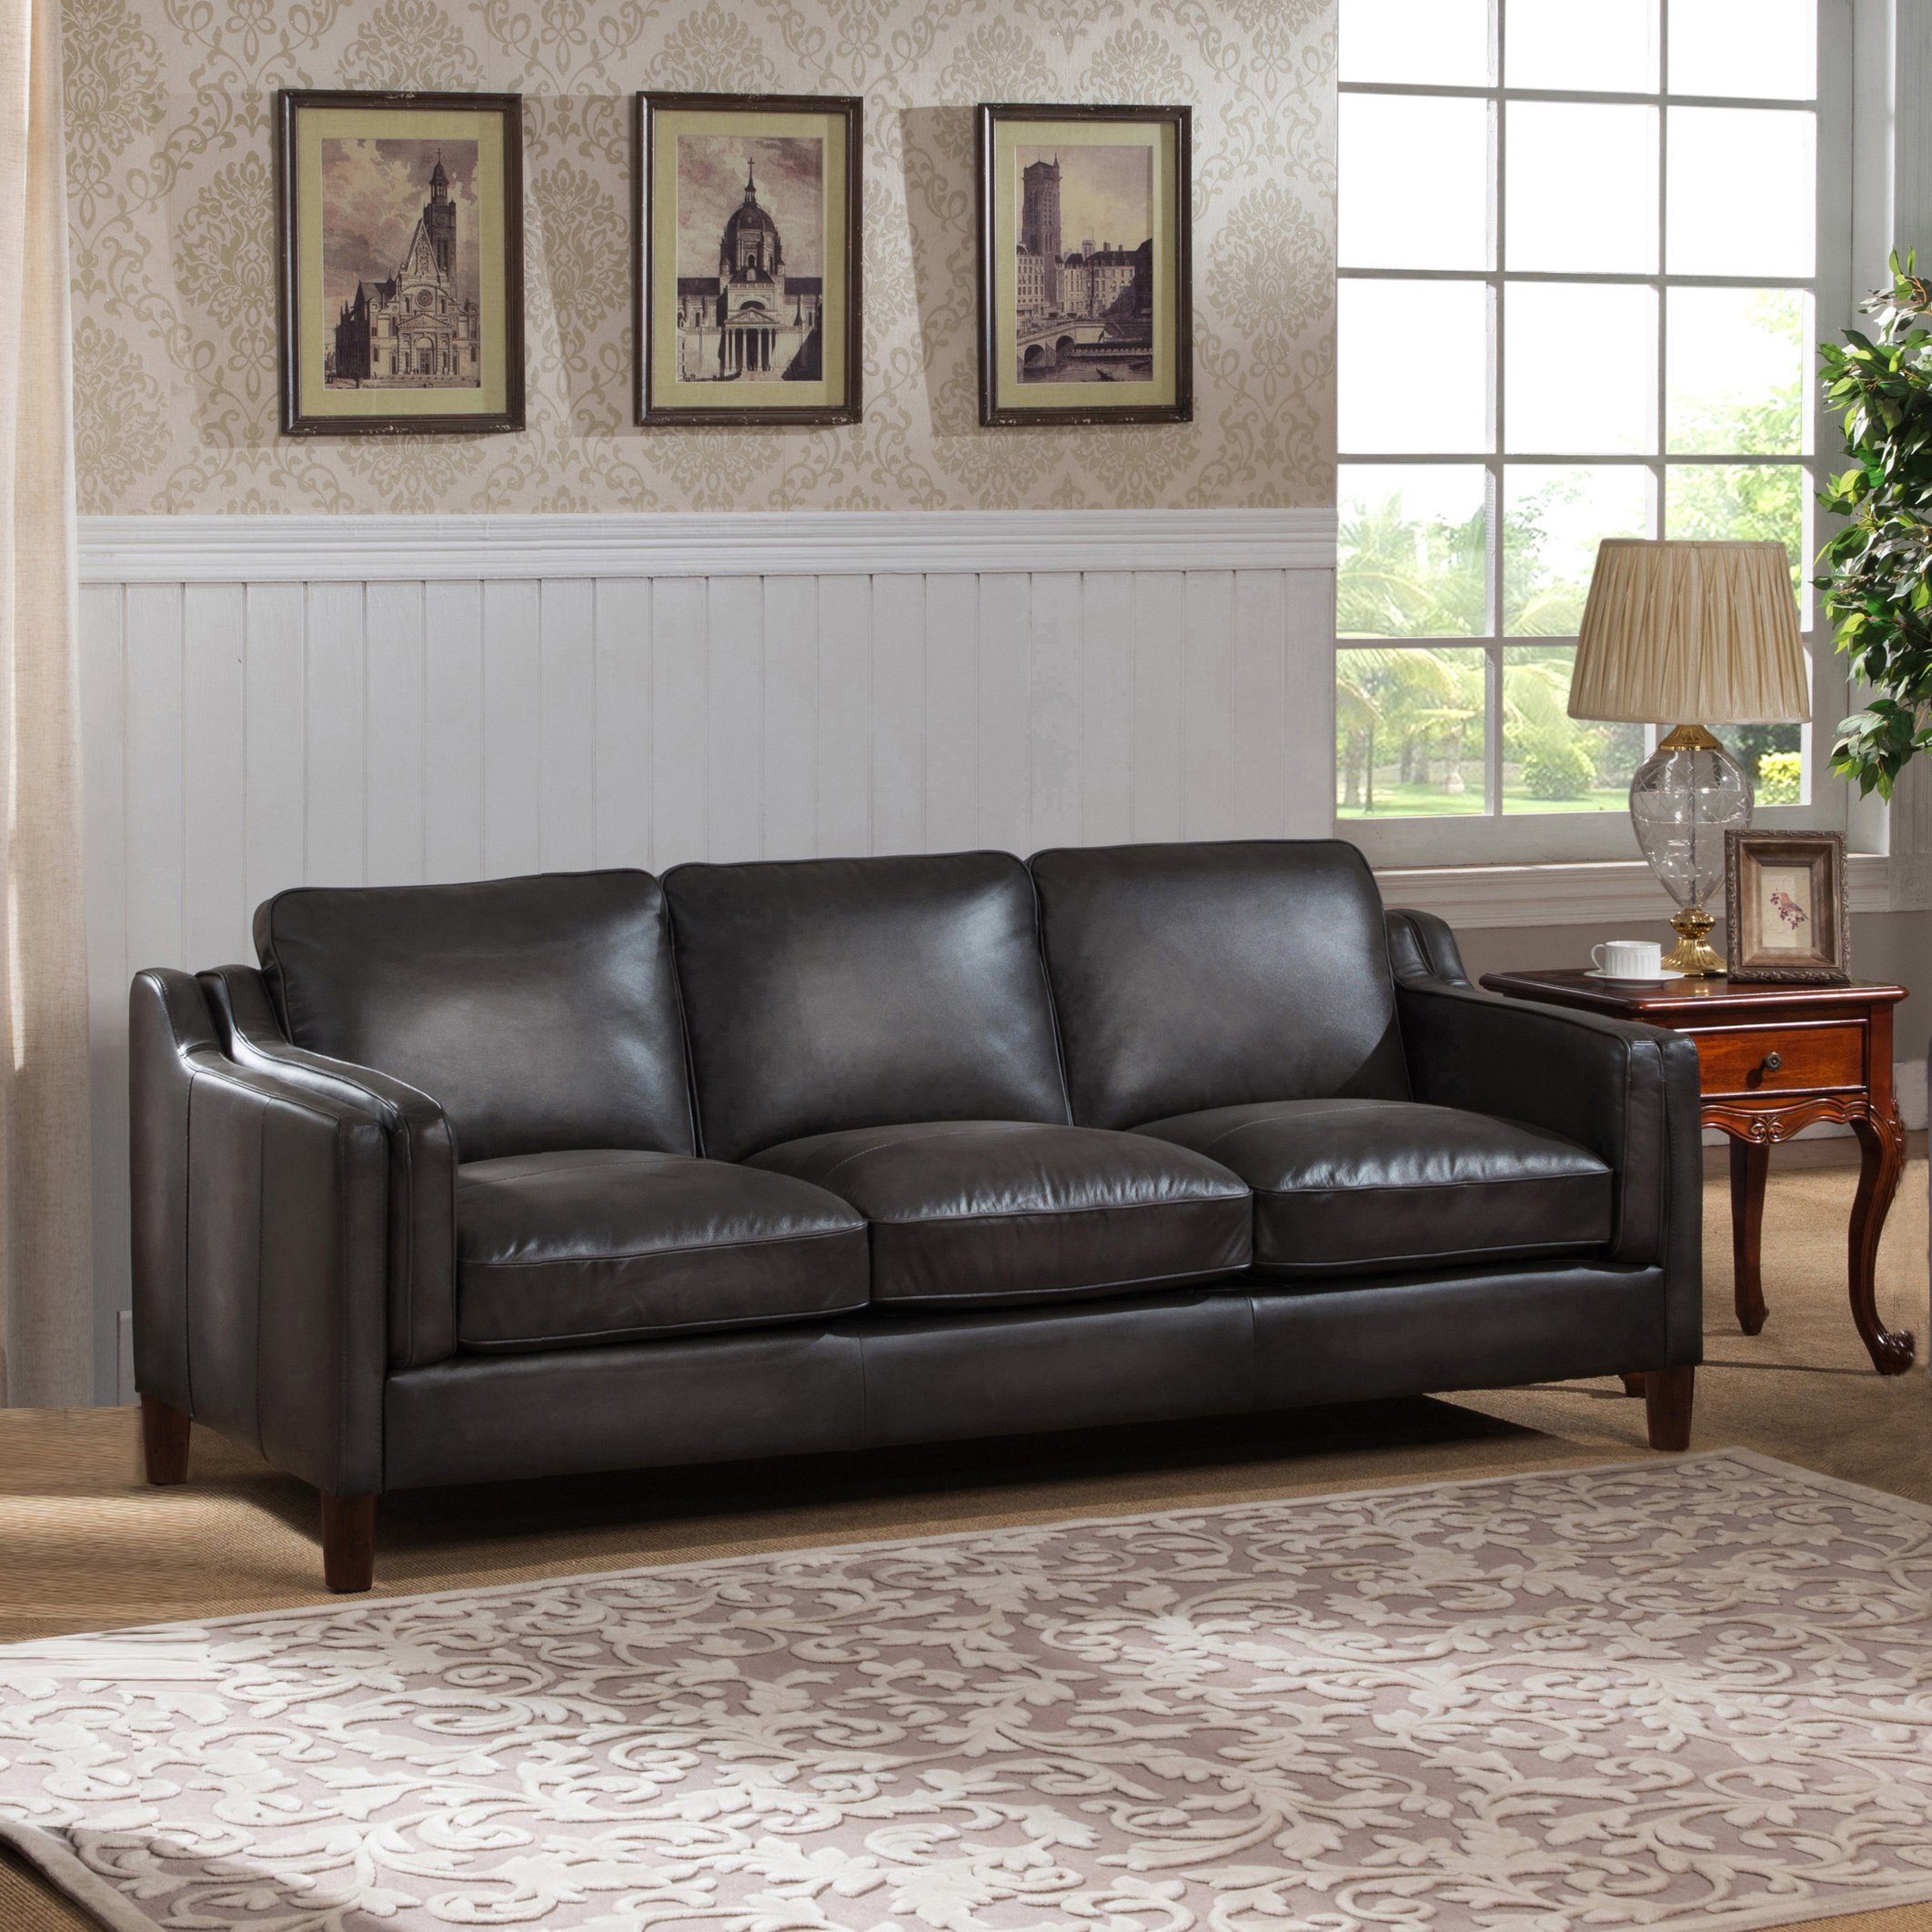 Shop Ames Premium Hand Rubbed Grey Top Grain Leather Sofa And Chair Intended For Ames Arm Sofa Chairs (Image 13 of 20)